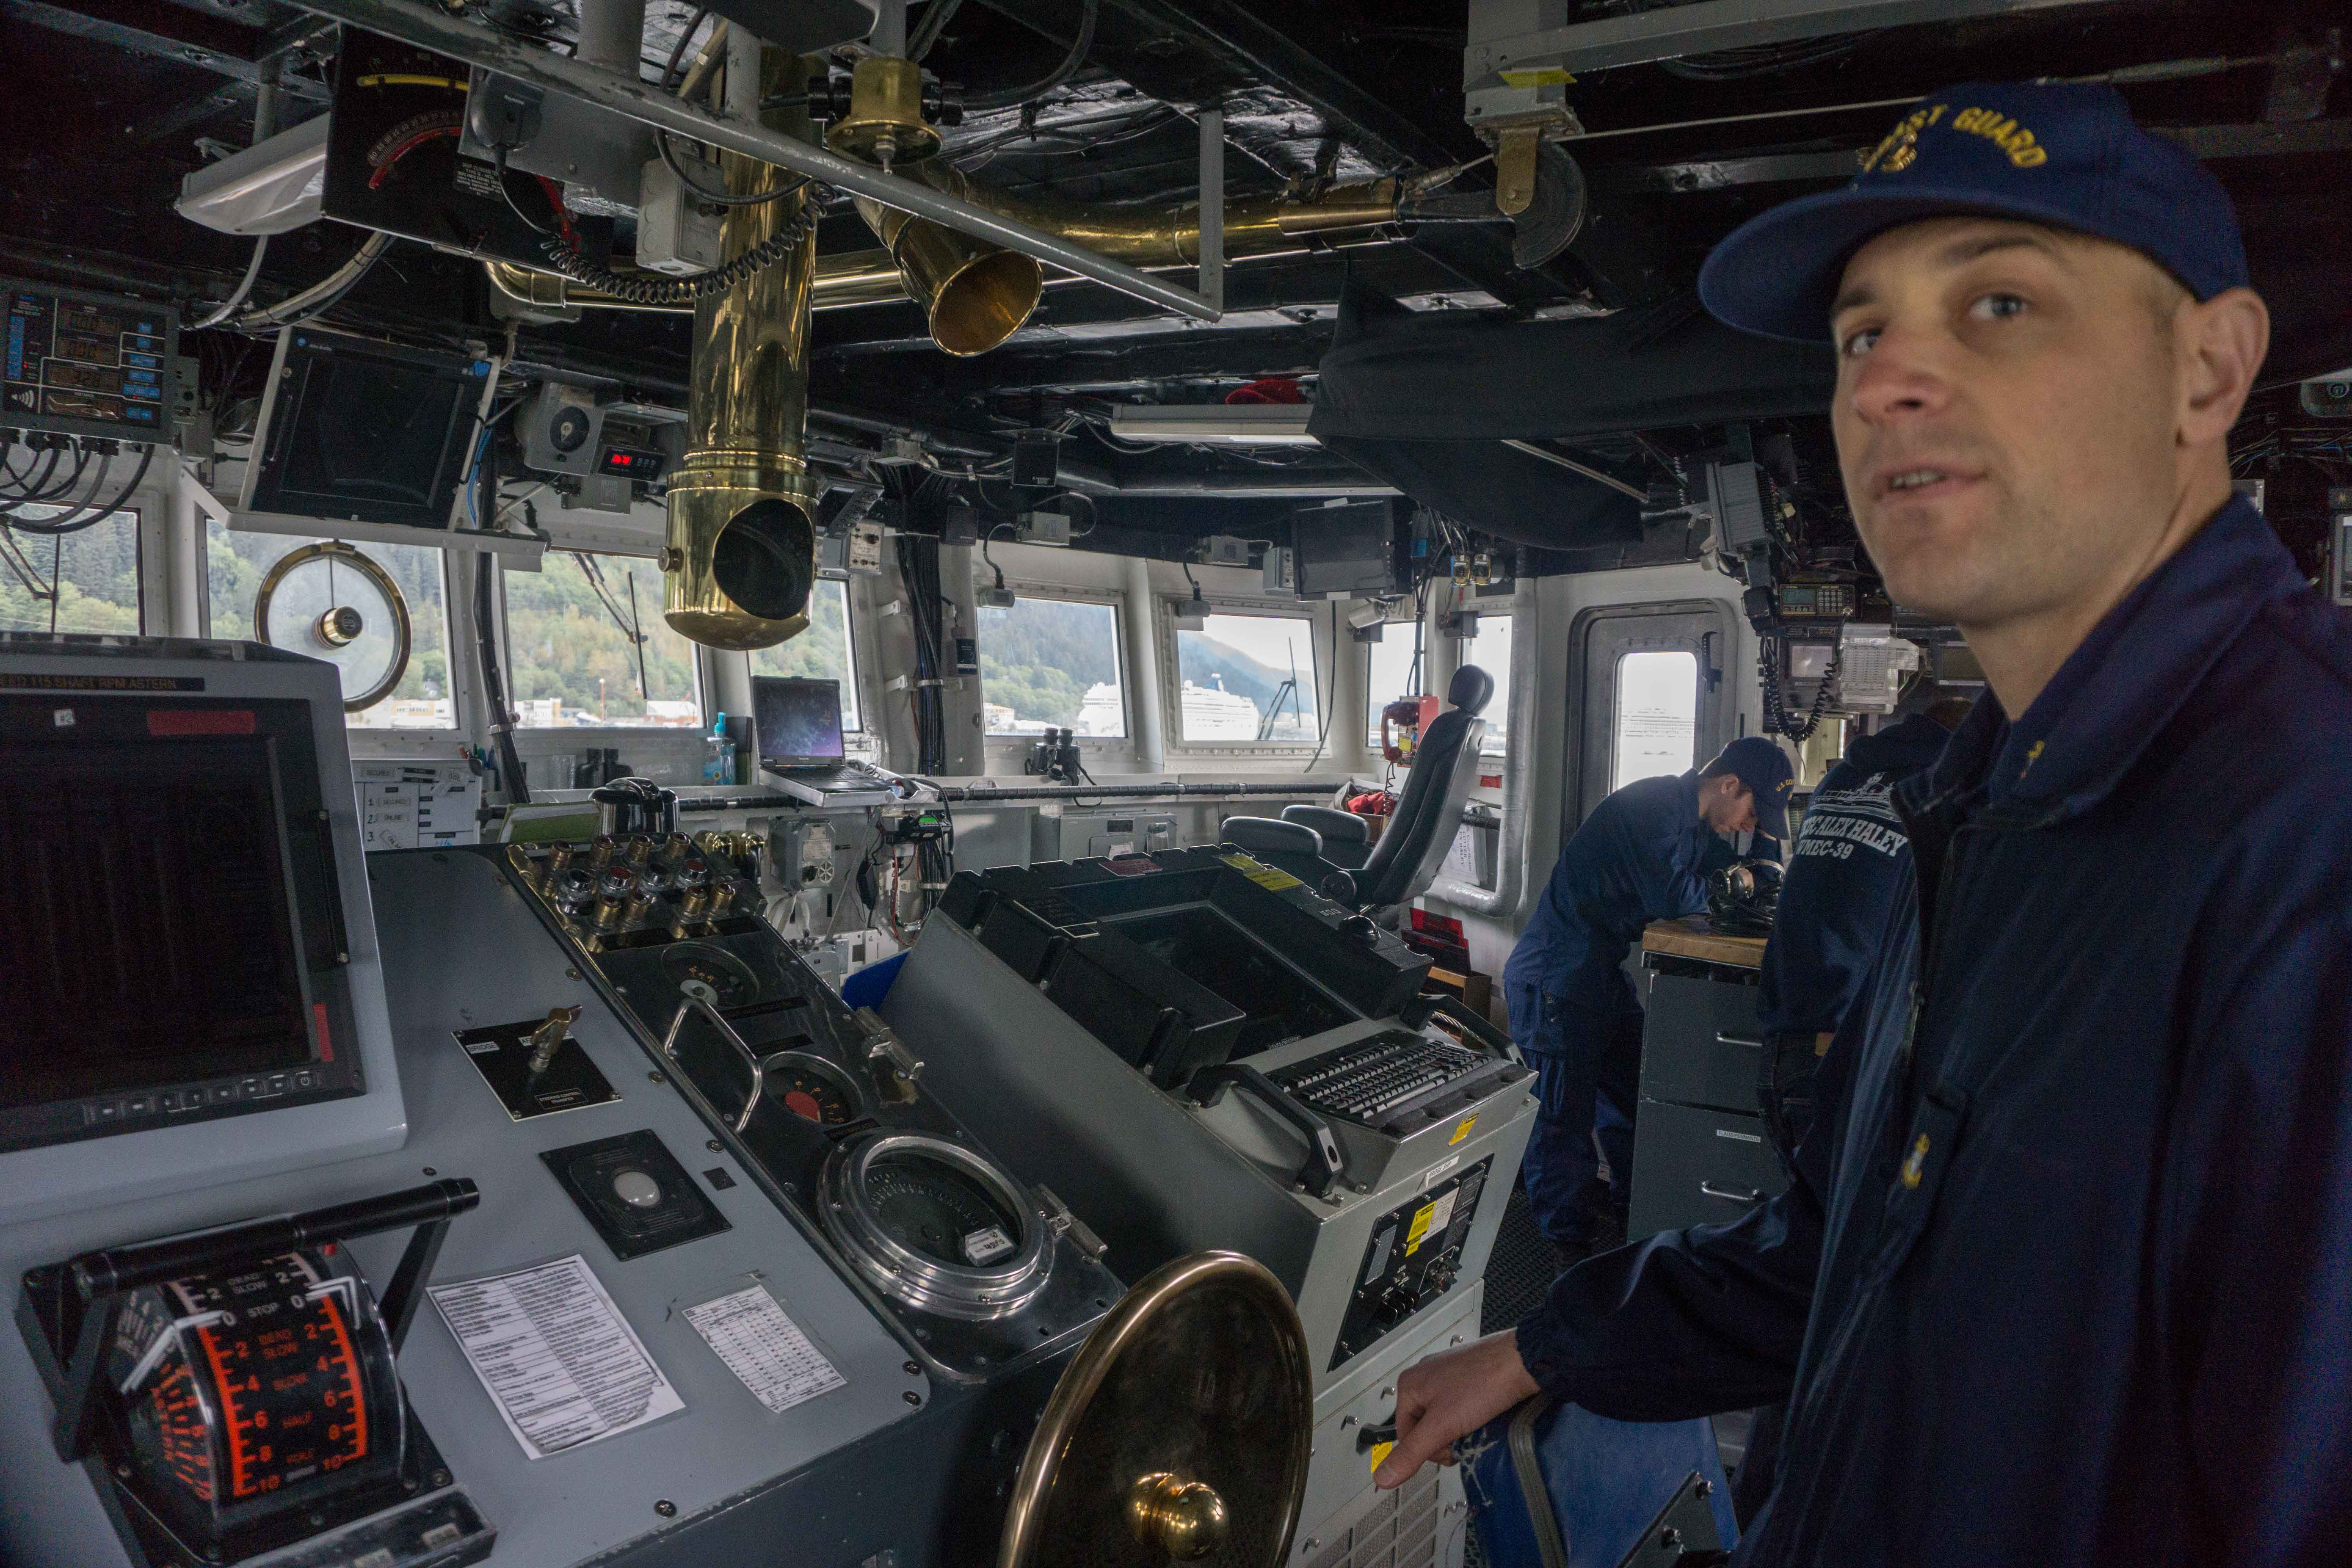 Chief Boatswain's mate Corey Bradshaw at the helm of the Coast Guard Cutter Alex Haley. (Photo by Jeremy Hsieh/KTOO)